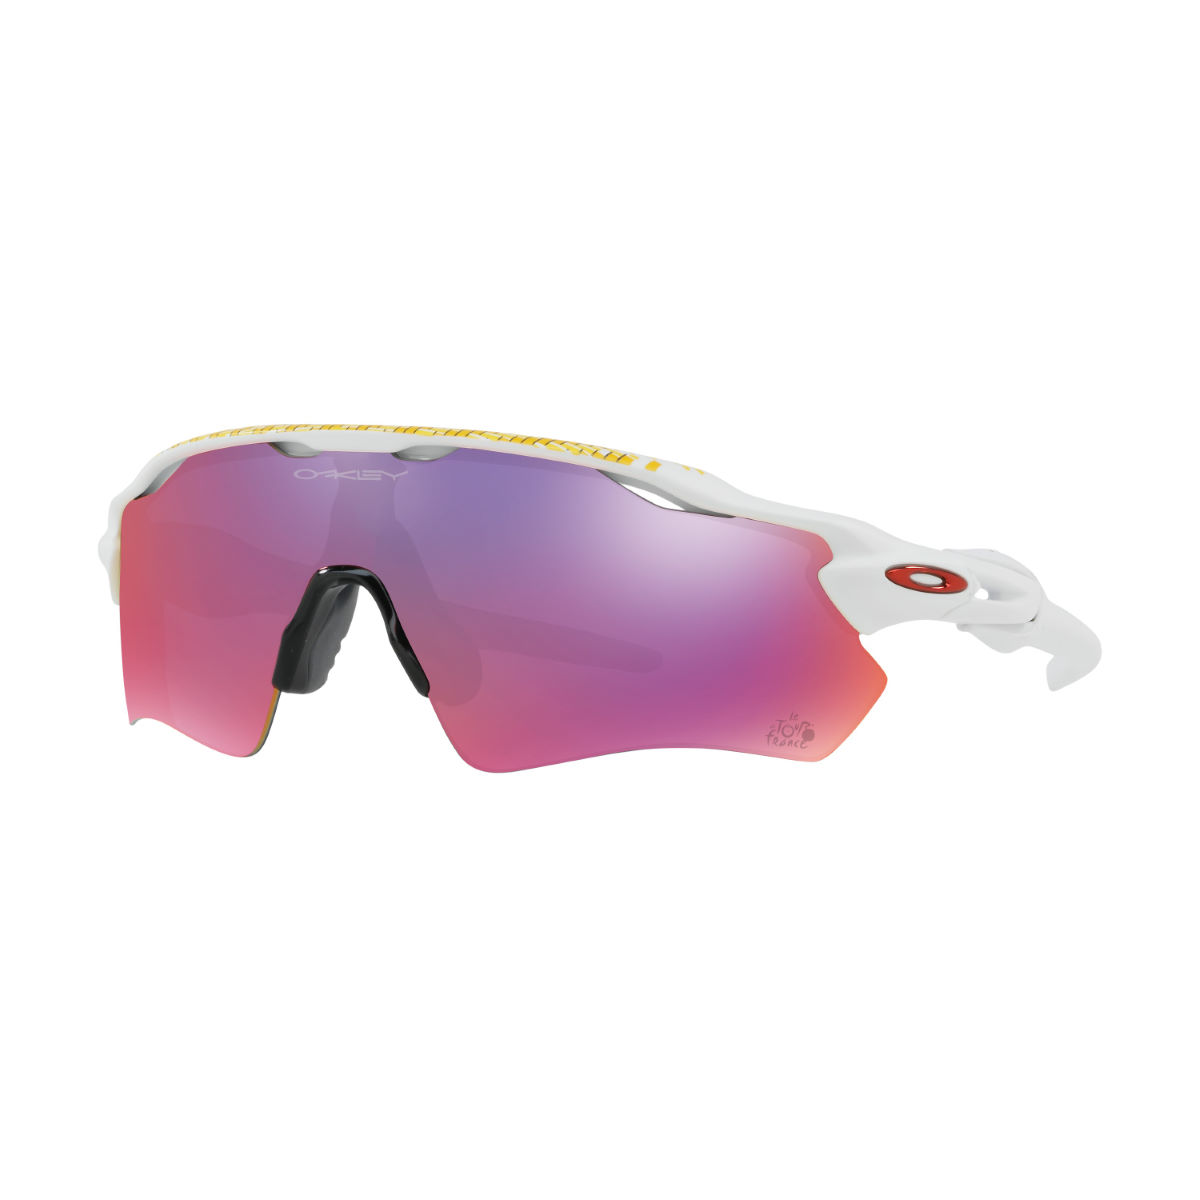 Lunettes de soleil Oakley Radar EV Path Tour De France - One Size